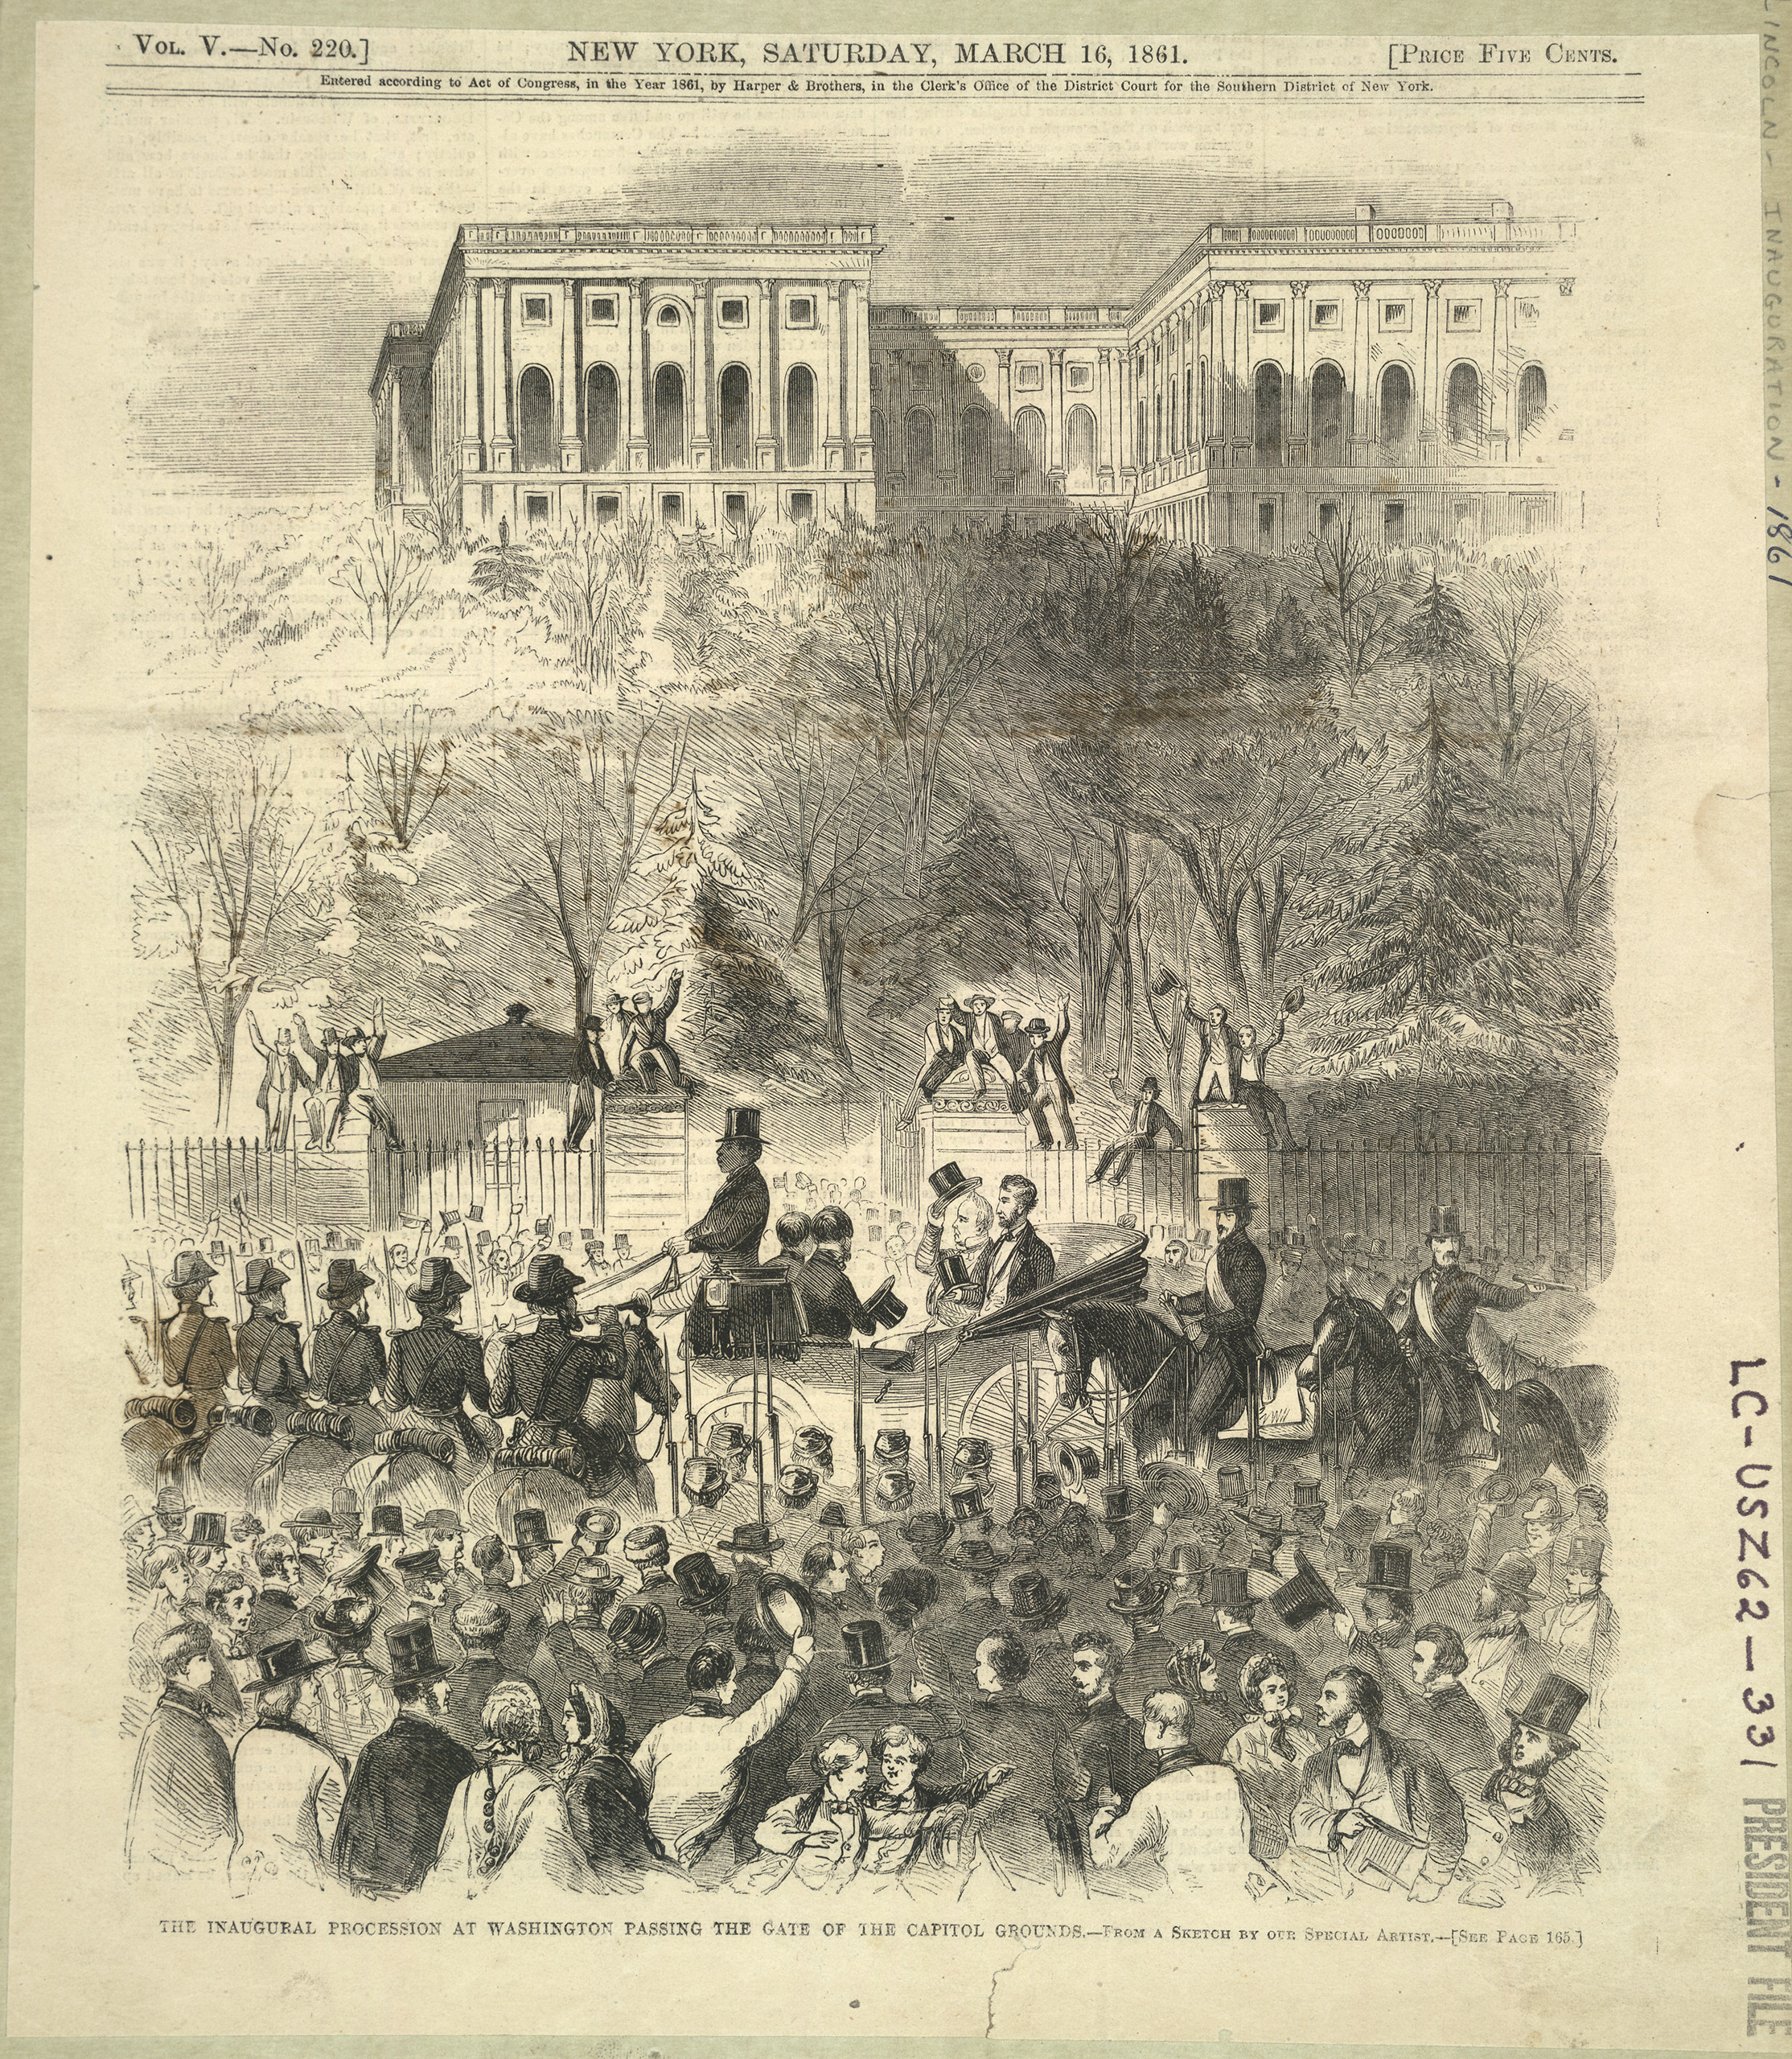 President-elect Abraham Lincoln and President Buchanan (tipping his top hat) amidst cheering crowd before west gate at base of Capitol grounds, on their way to the Capitol for Lincoln's first inauguration, 1861.